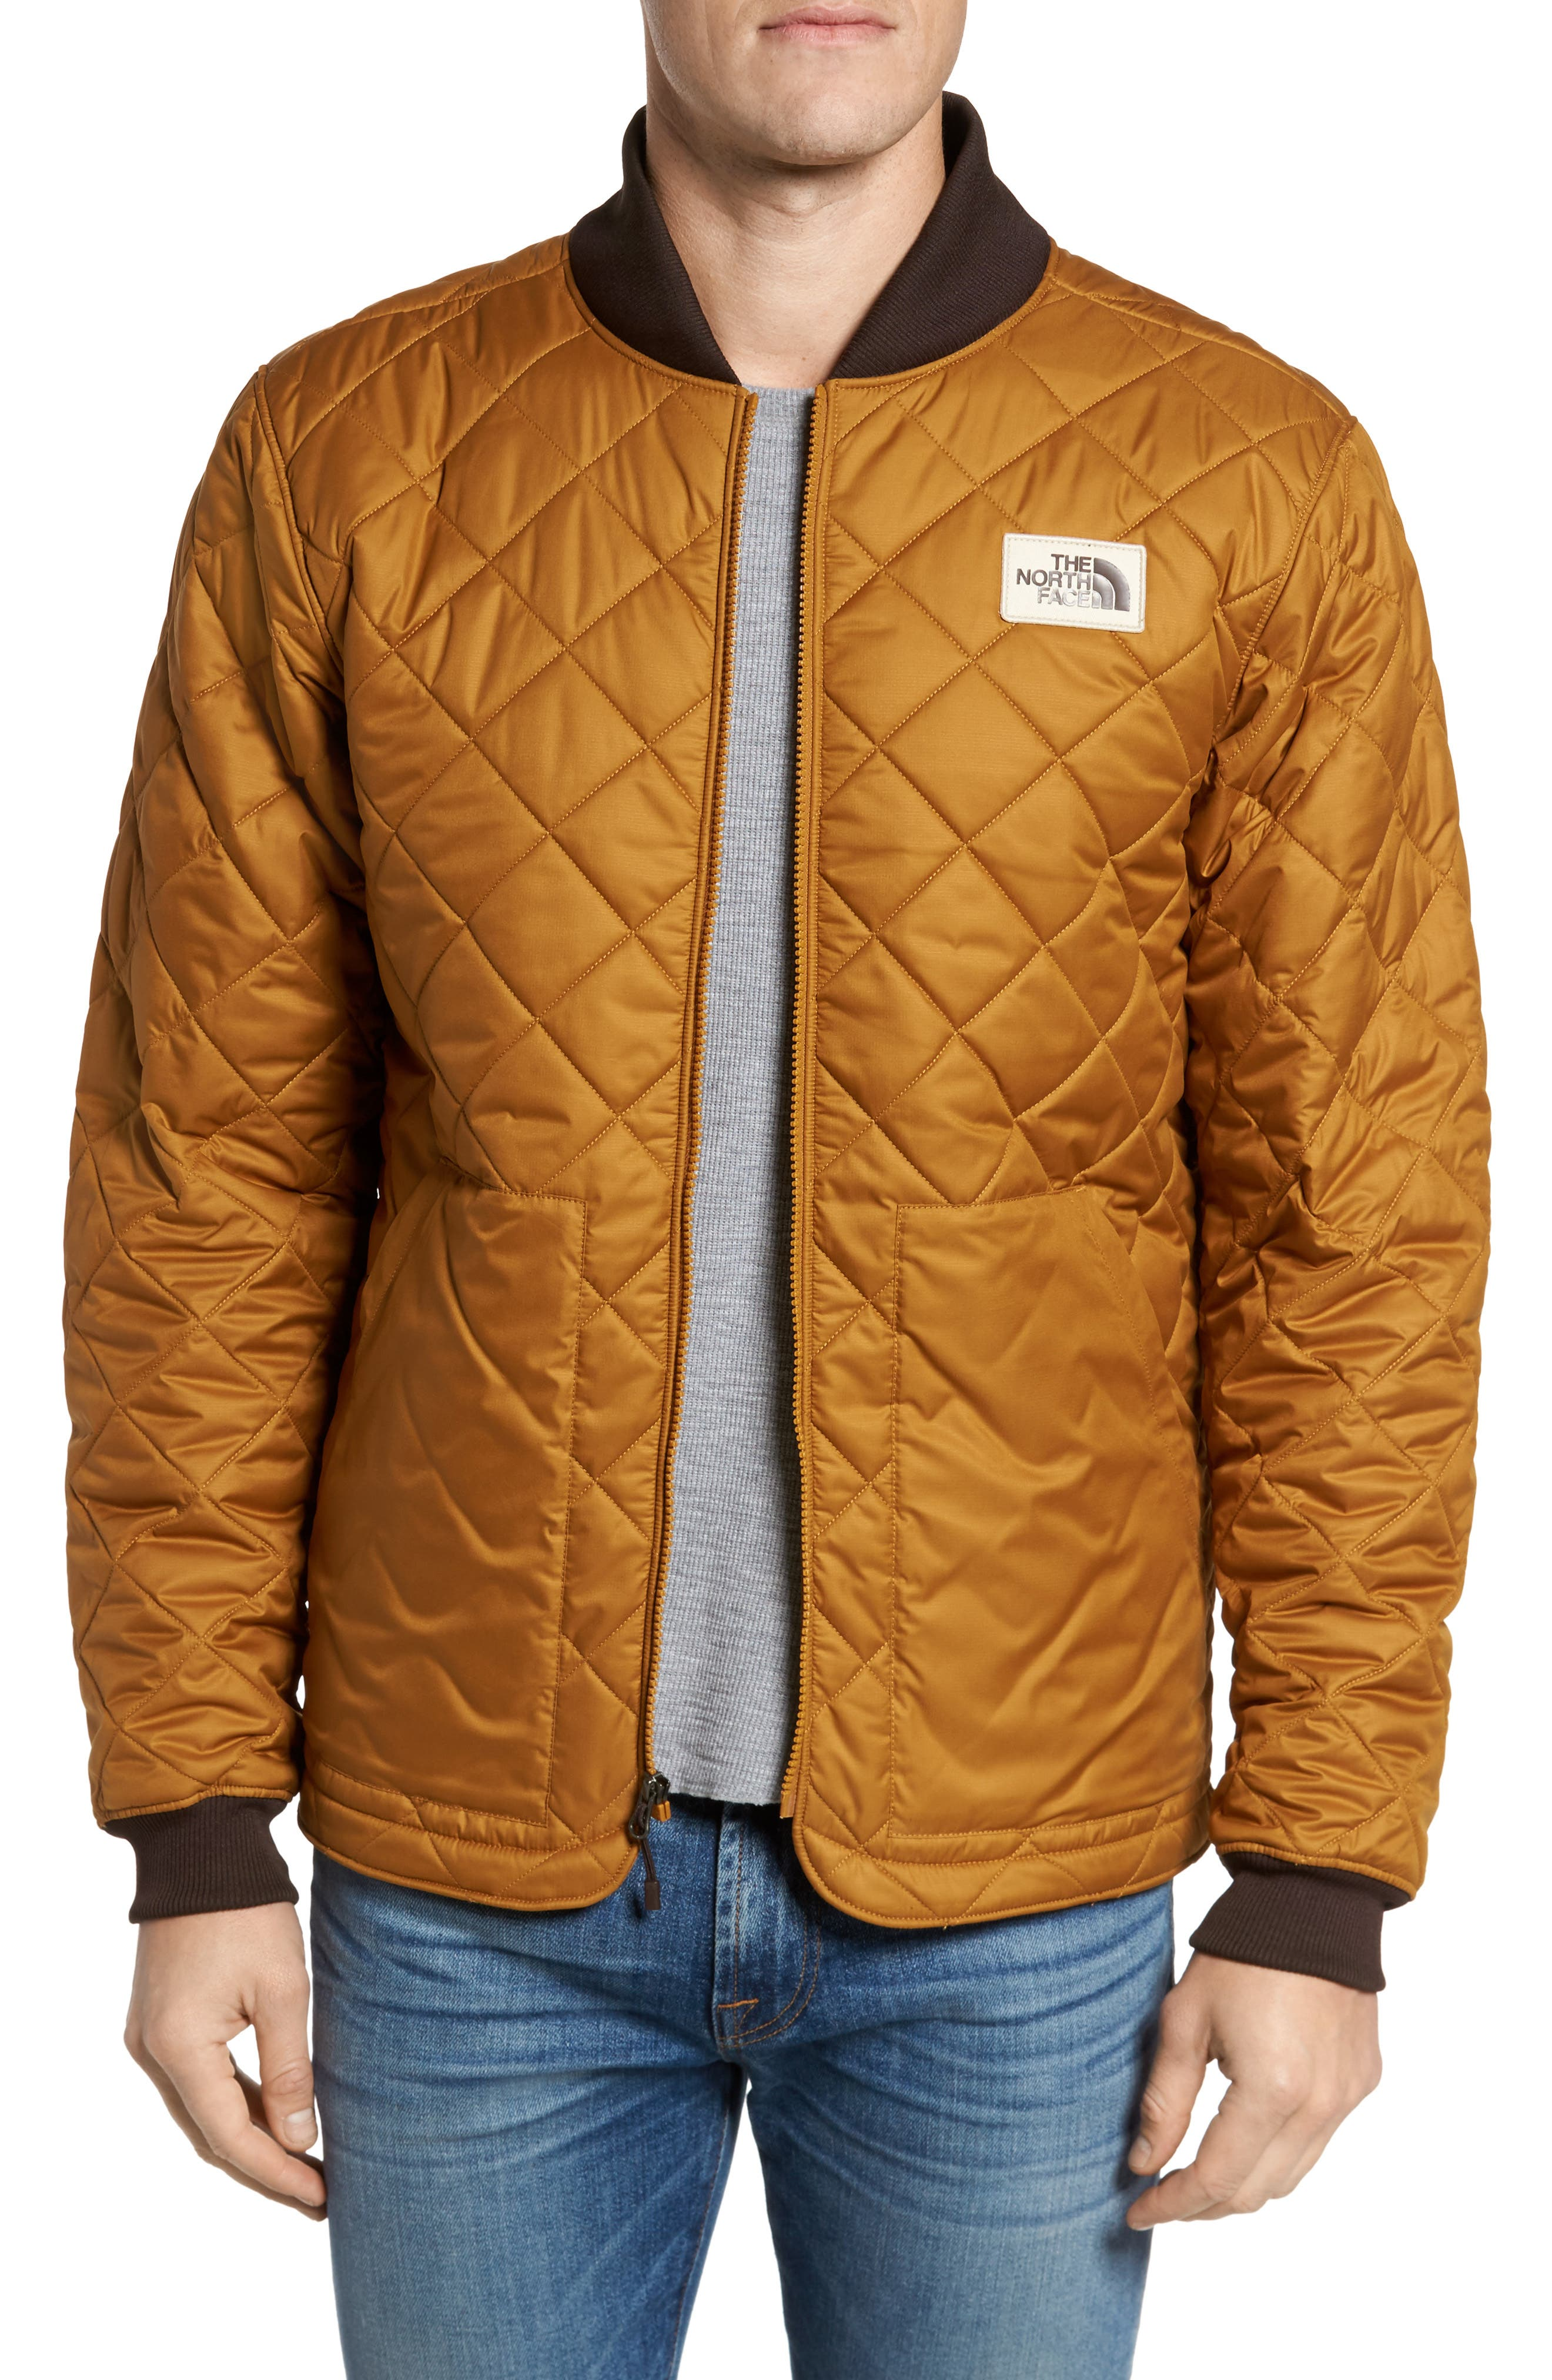 Cuchillo Insulated Jacket,                             Main thumbnail 1, color,                             Golden Brown